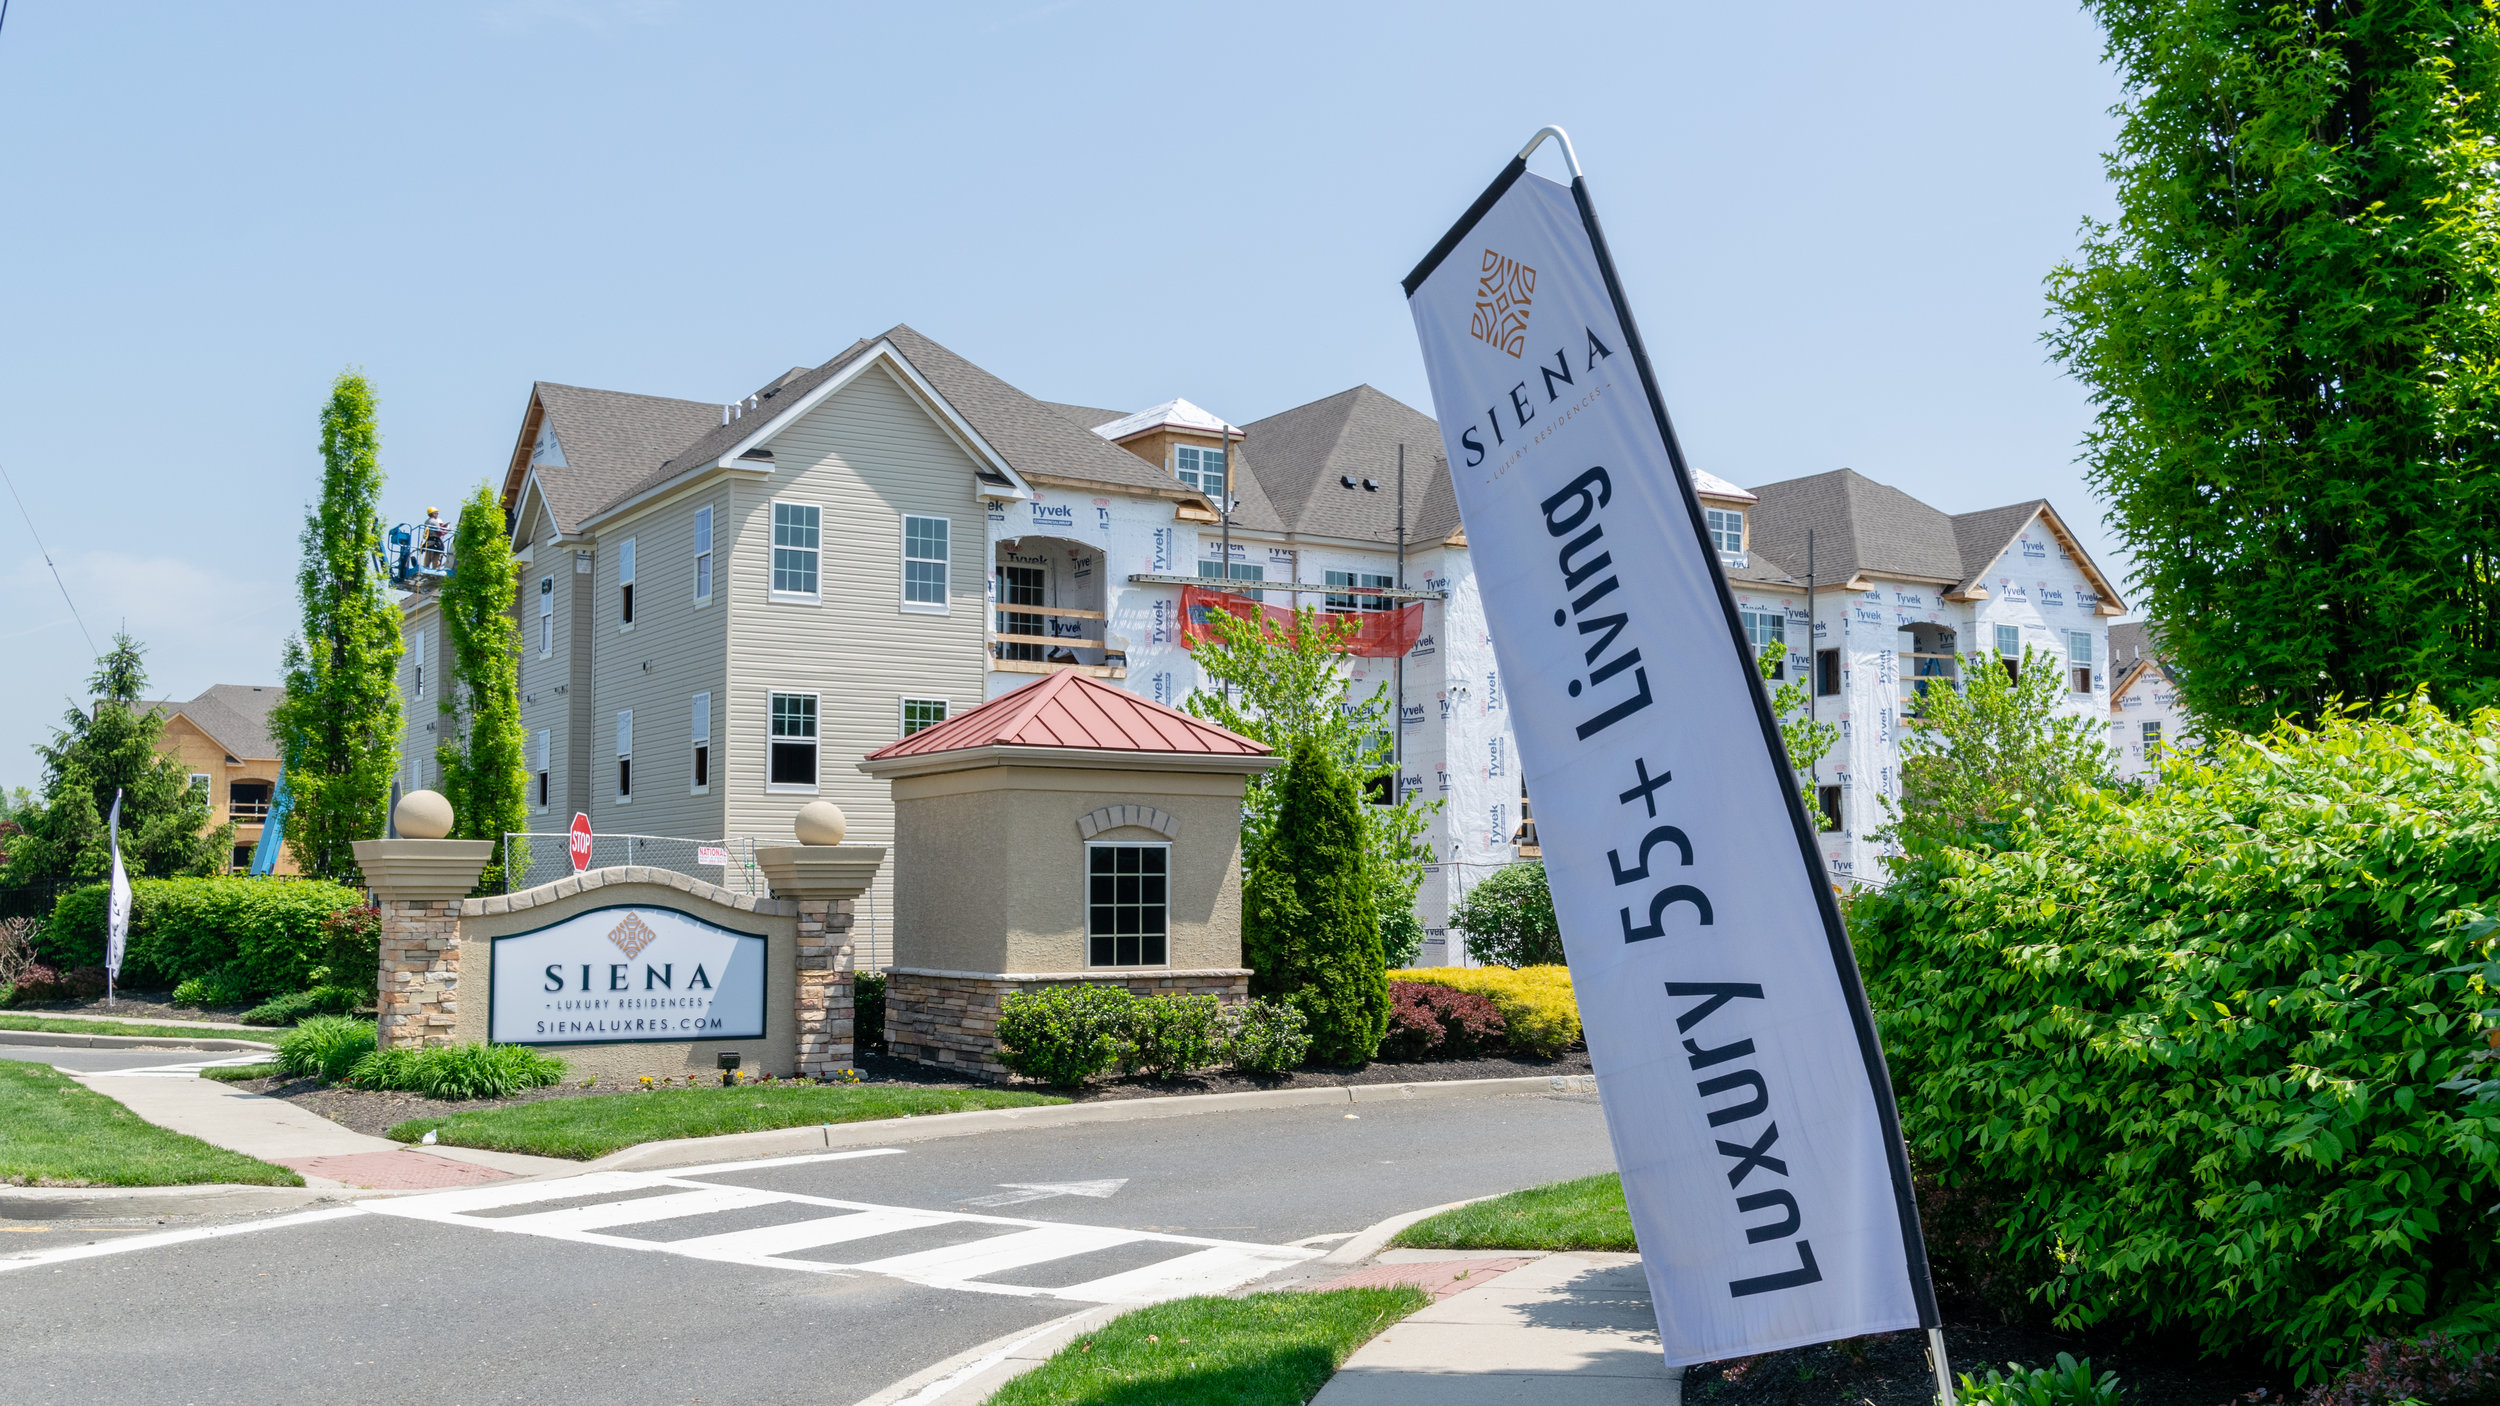 Siena Luxury Residences Senior Housing Cinnaminson, NJ Built by March Construction Luxury 55+ Living